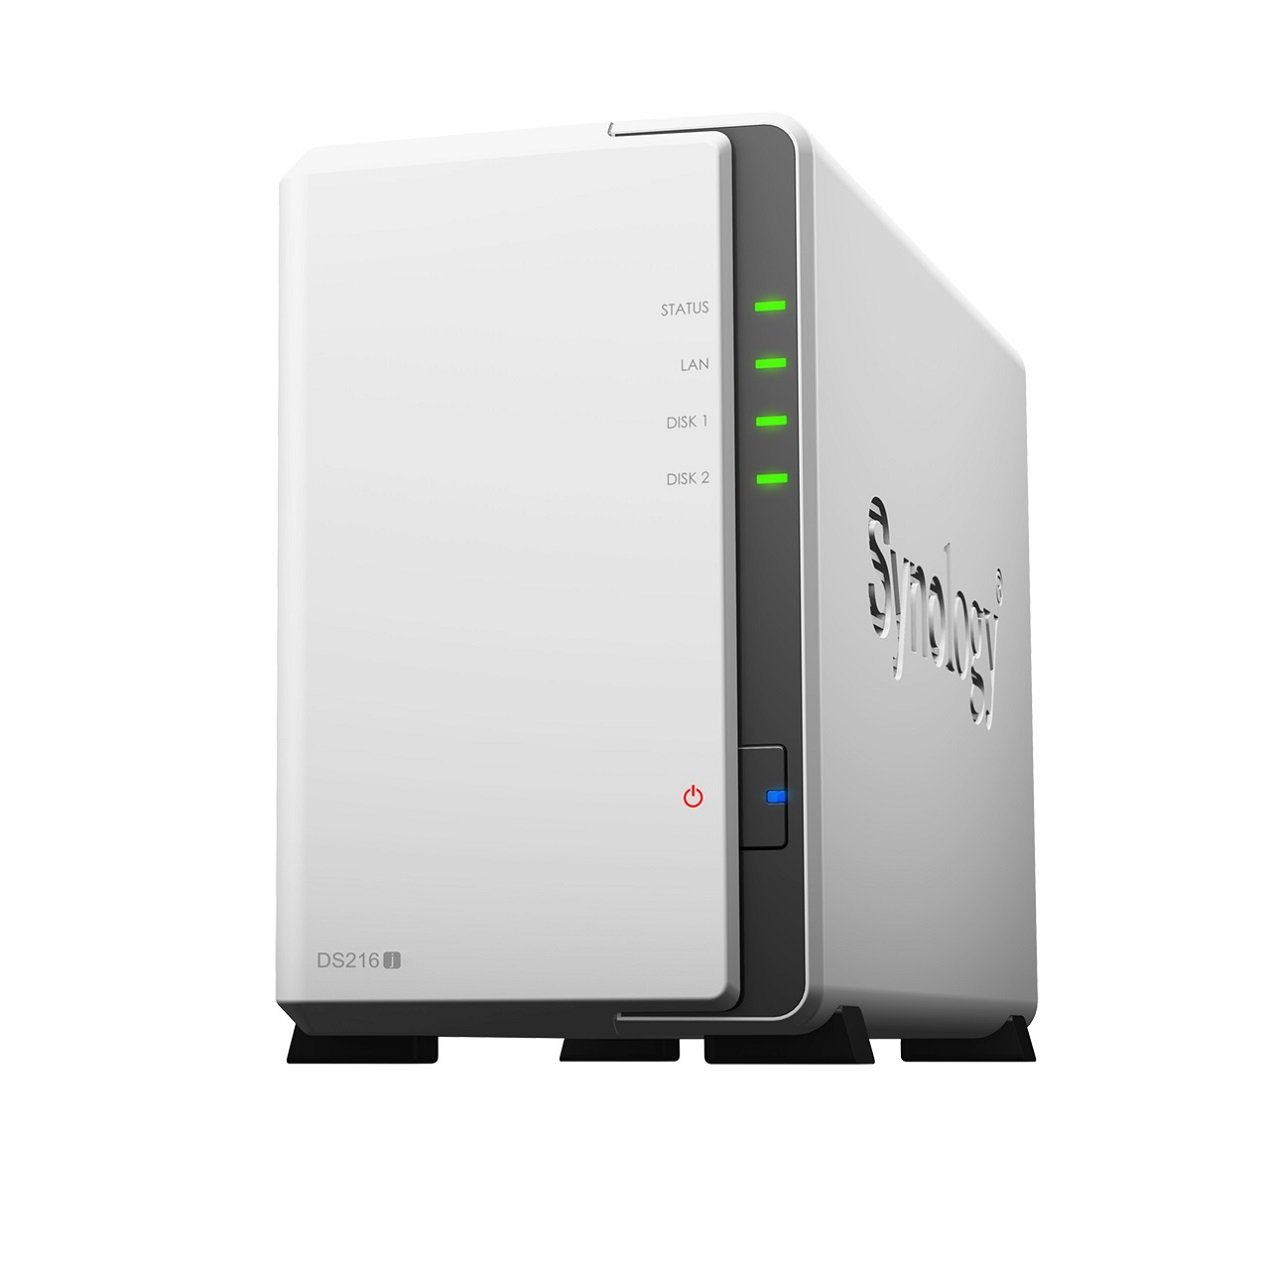 TALLA 512 MB. Synology , DS216j- Dispositivo de almacenamiento en red